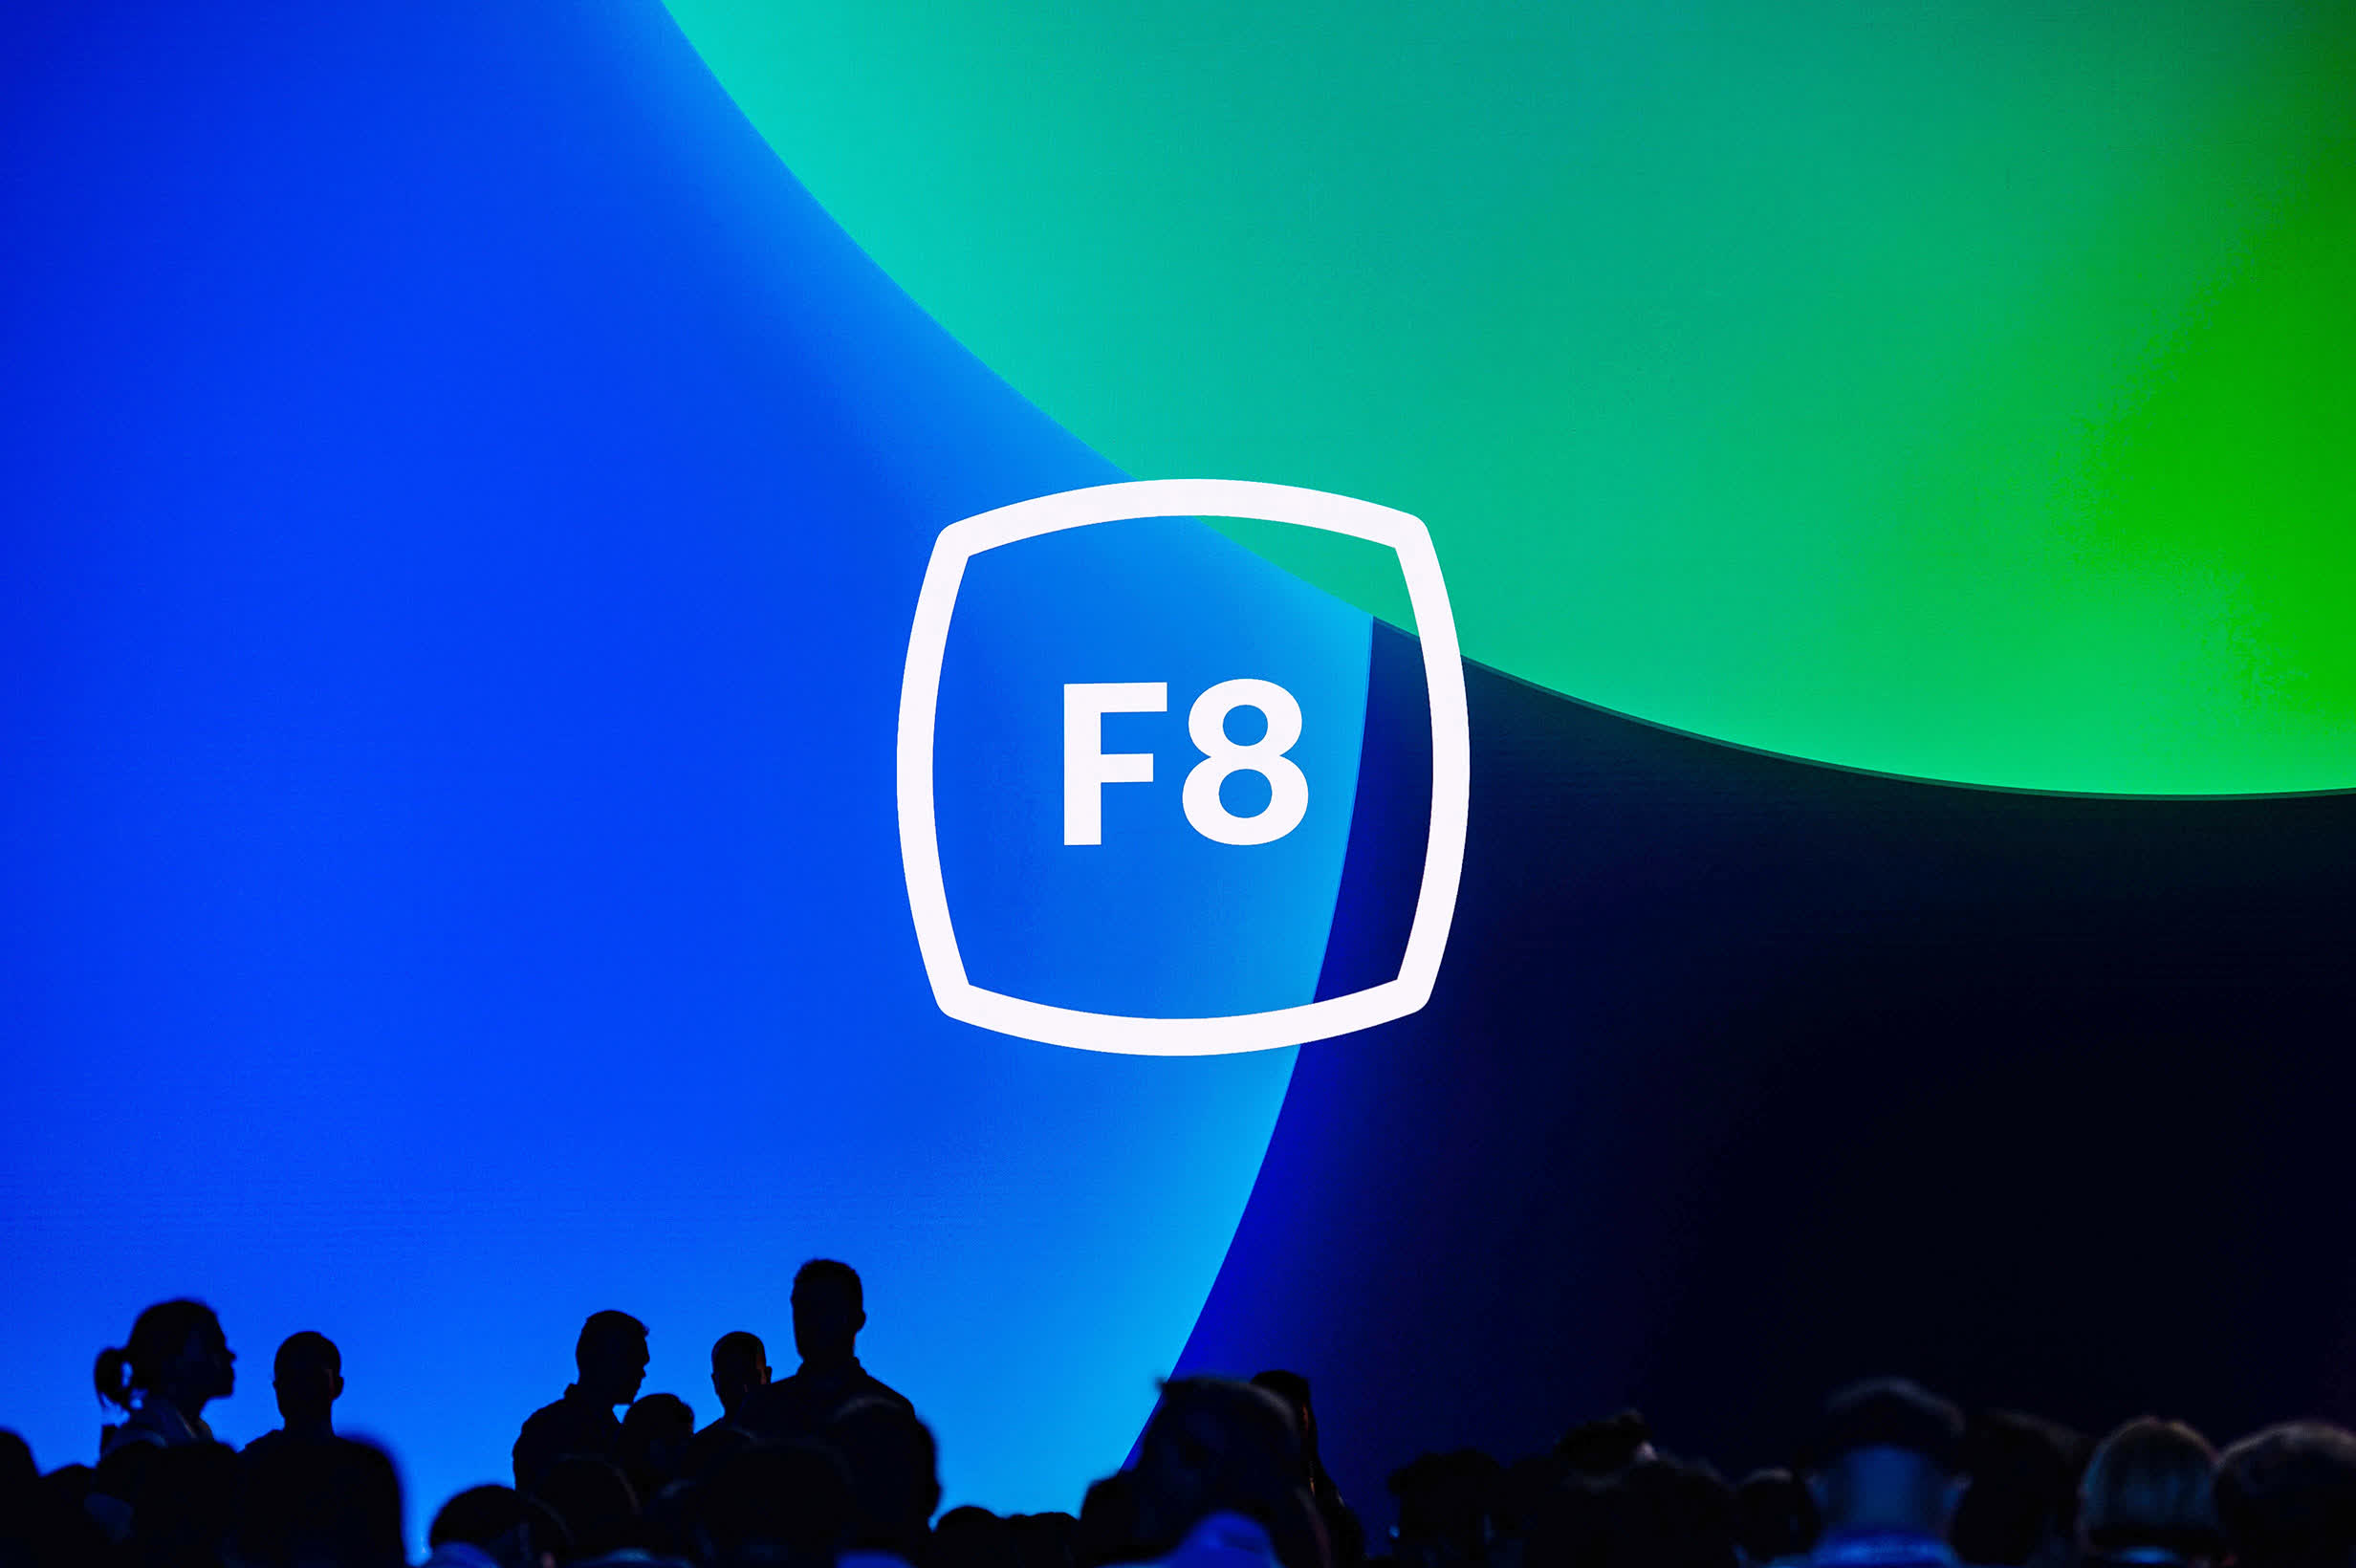 Facebook F8 returns in June, but as an online event and without Zuckerberg